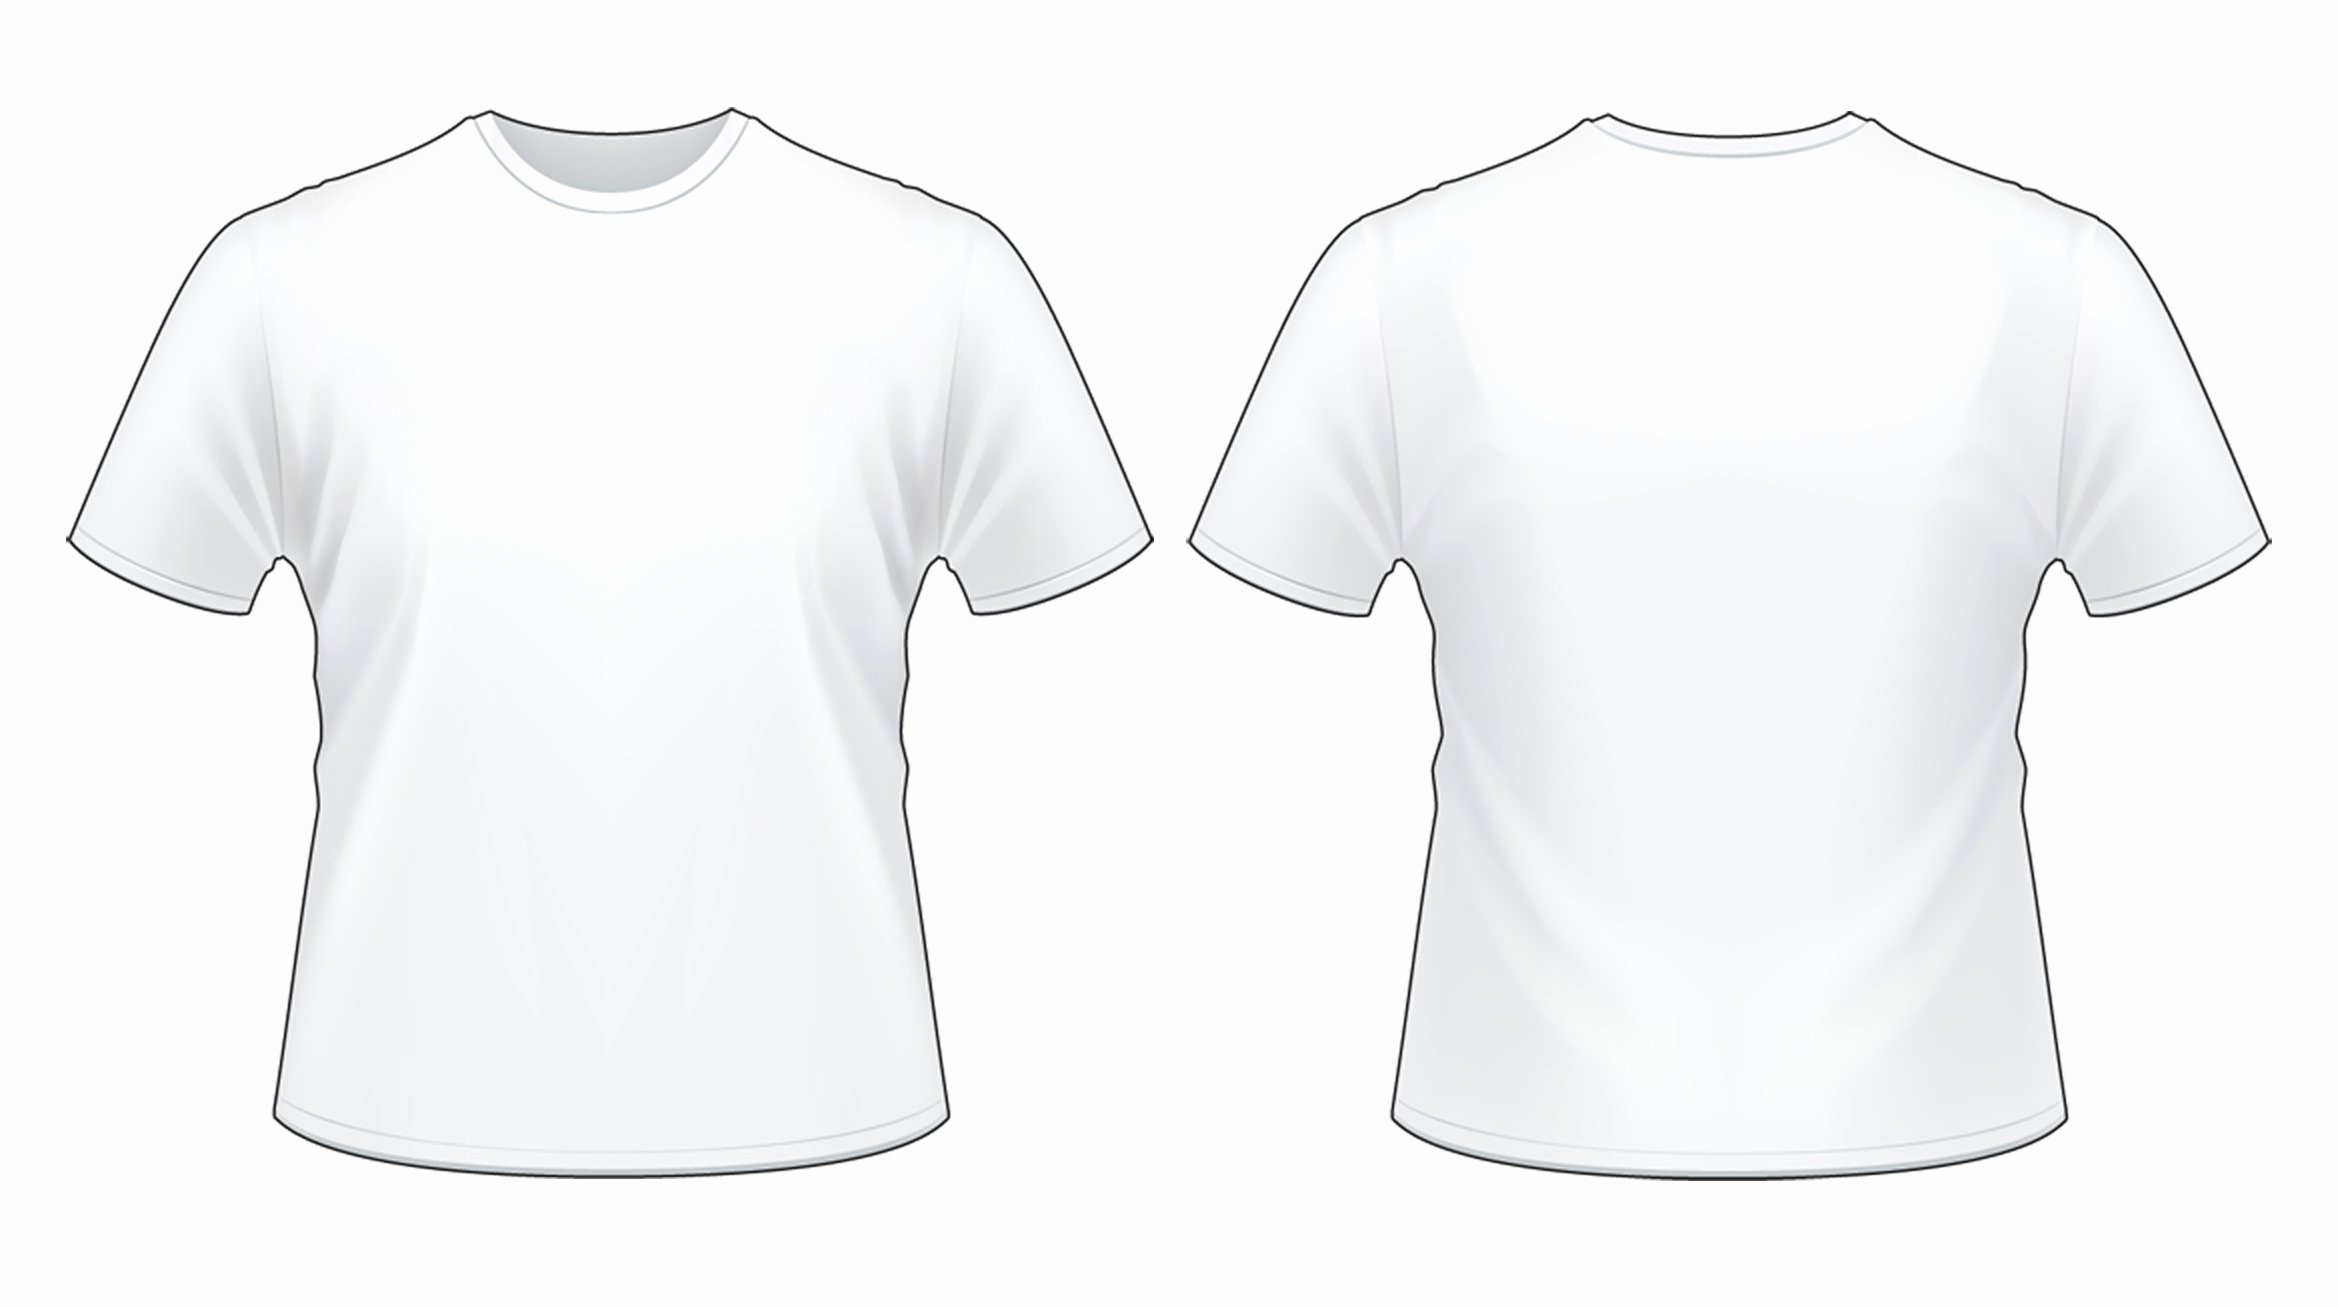 T Shirt Template Pdf Best Of Iconic Waterfront T Shirt Design Contest Spacing toronto